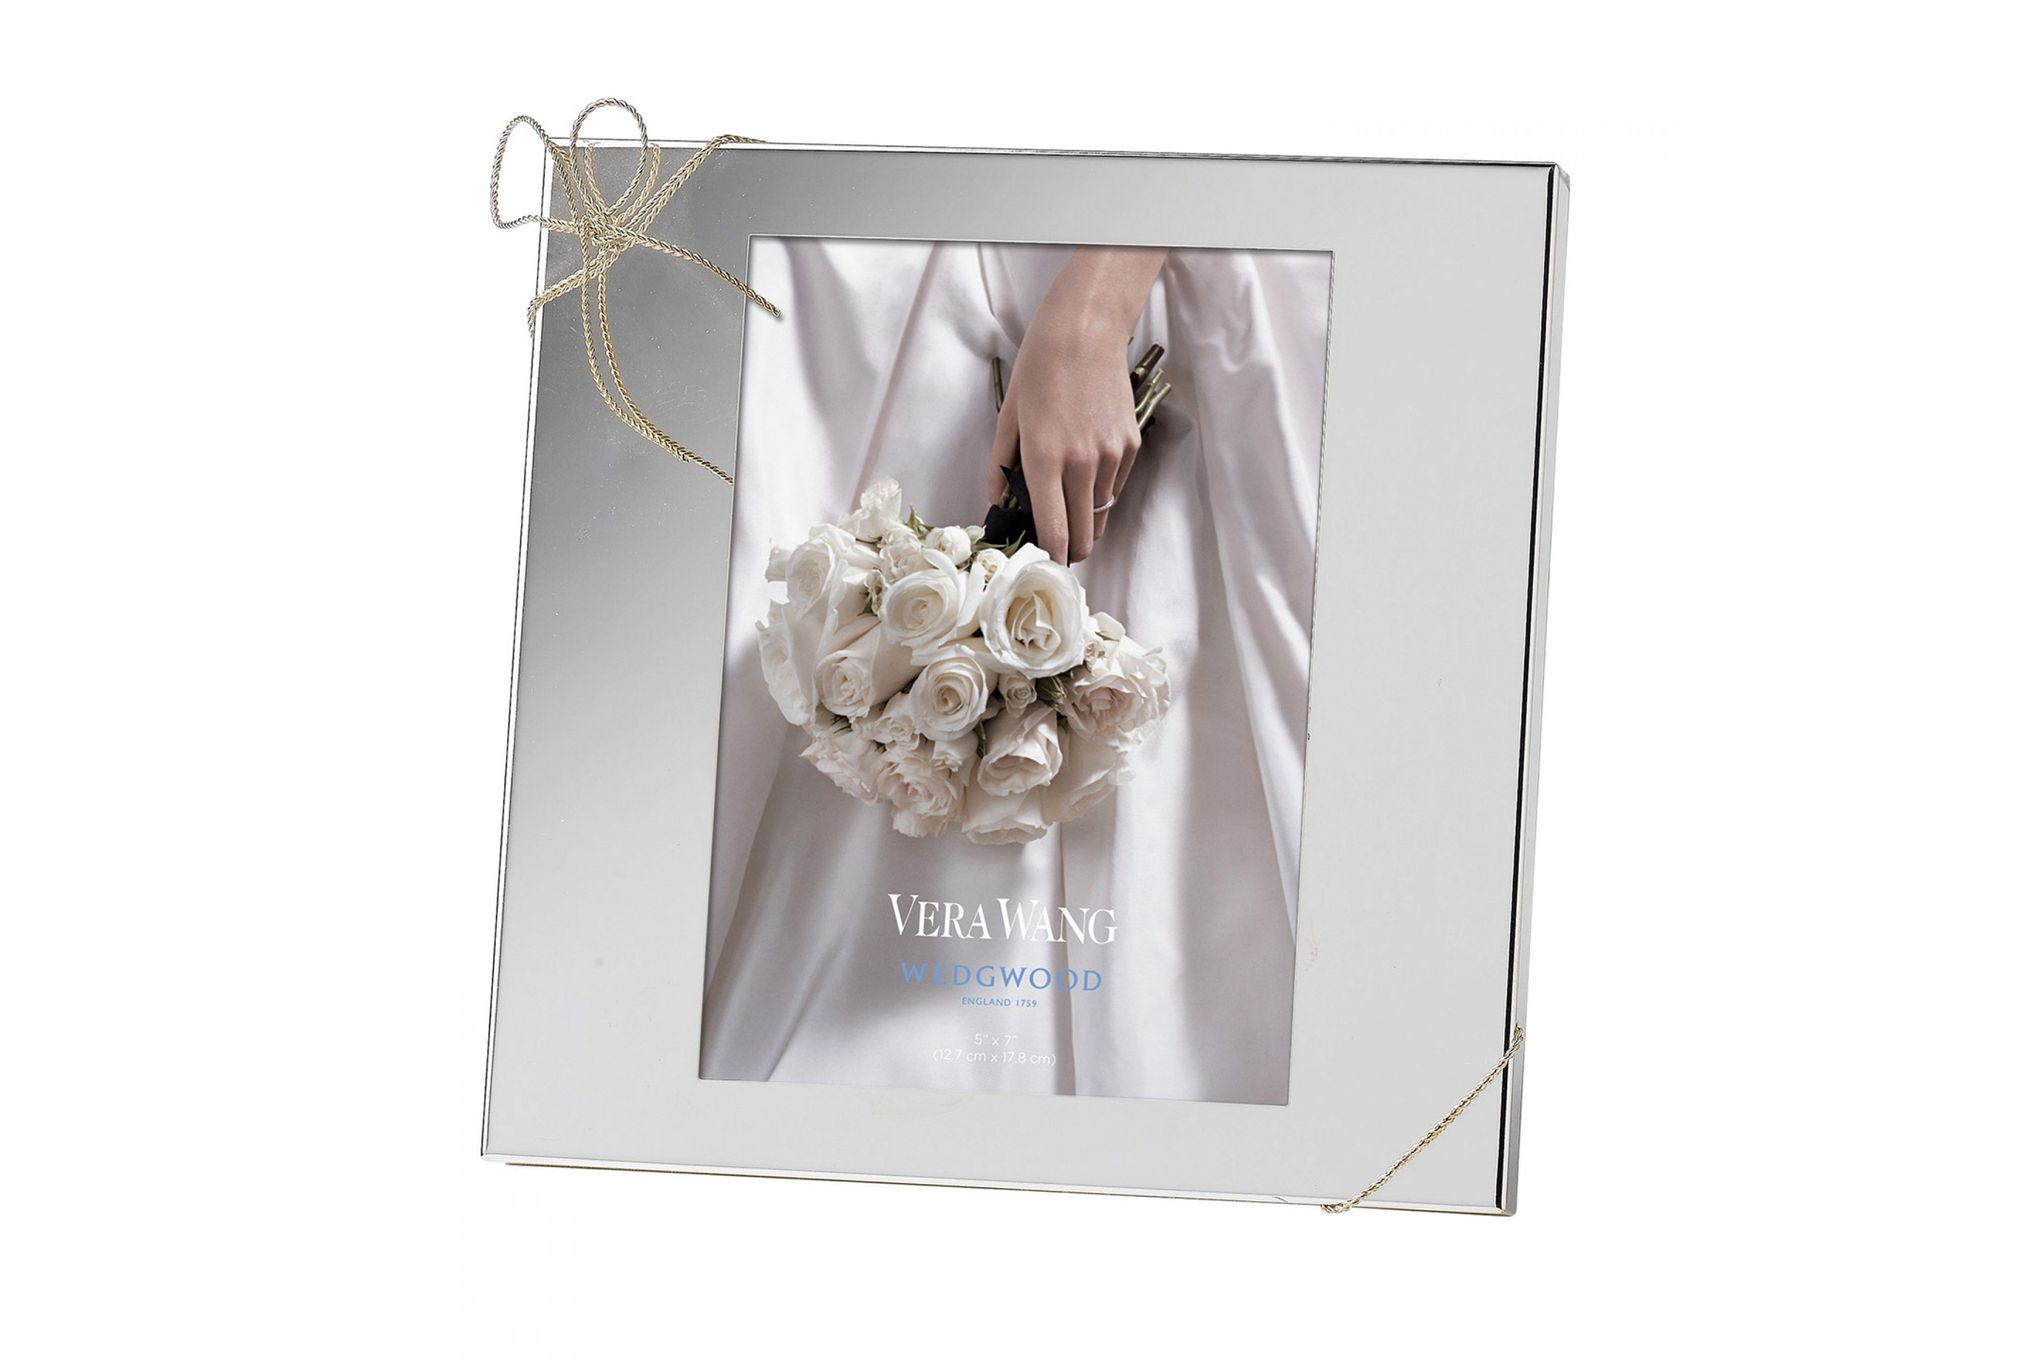 """Vera Wang for Wedgwood Gifts & Accessories Photo Frame Love Knots 5 x 7"""" thumb 1"""